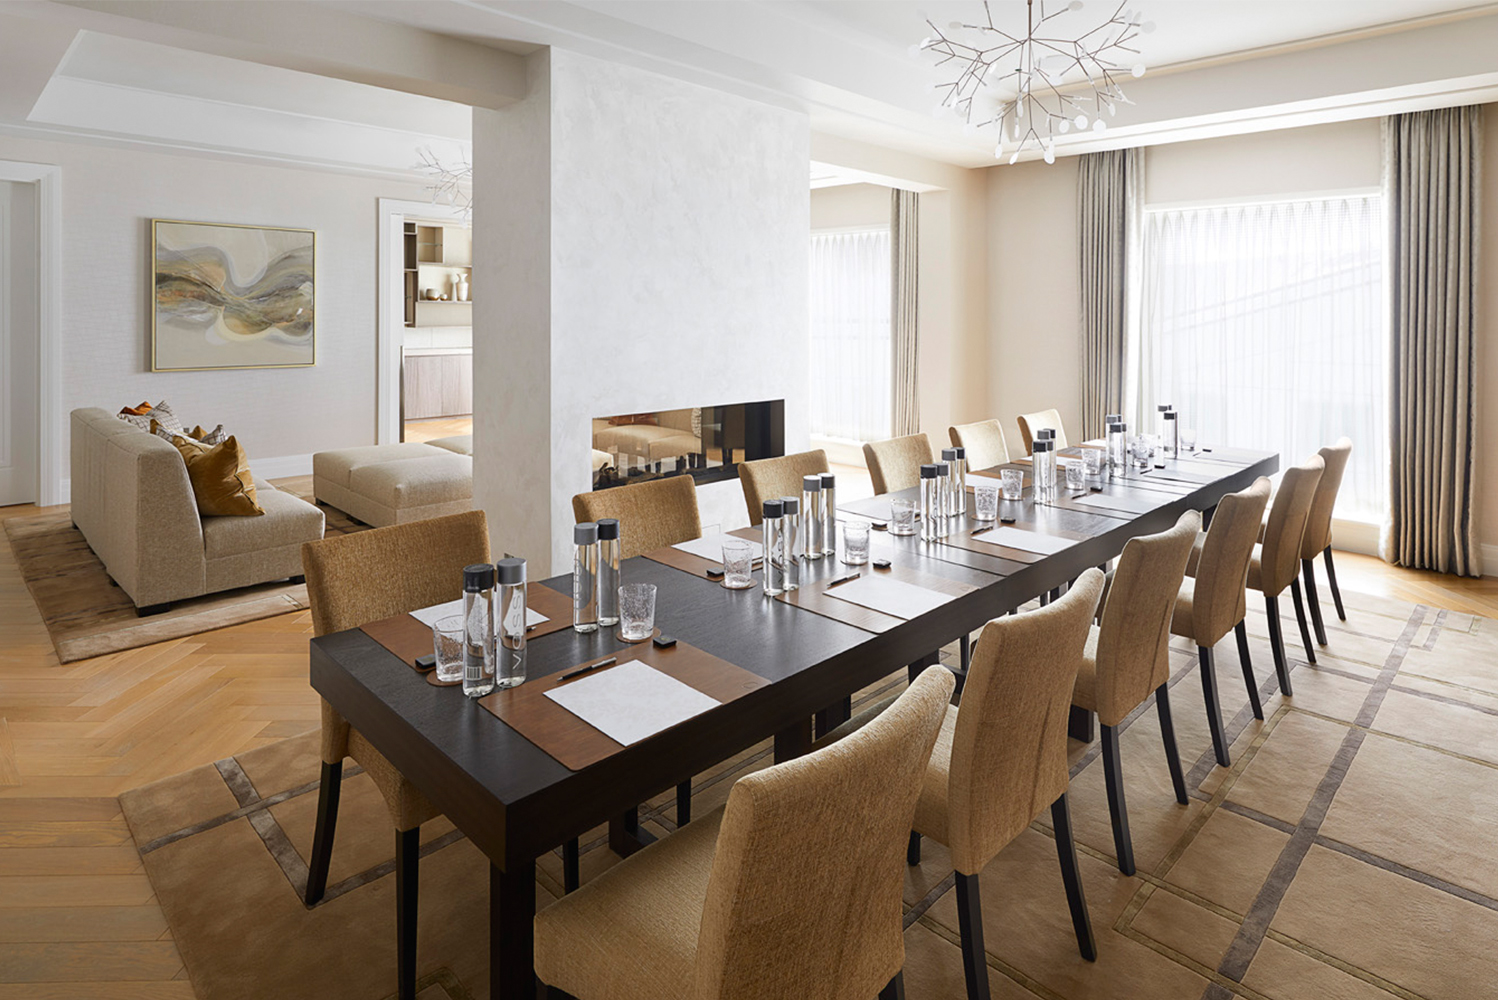 Four Seasons Hotel London at Ten Trinity Square launched two new events spaces – The Thames Penthouse and The City Penthouse – on the seventh floor of the historic Grade-II listed building.